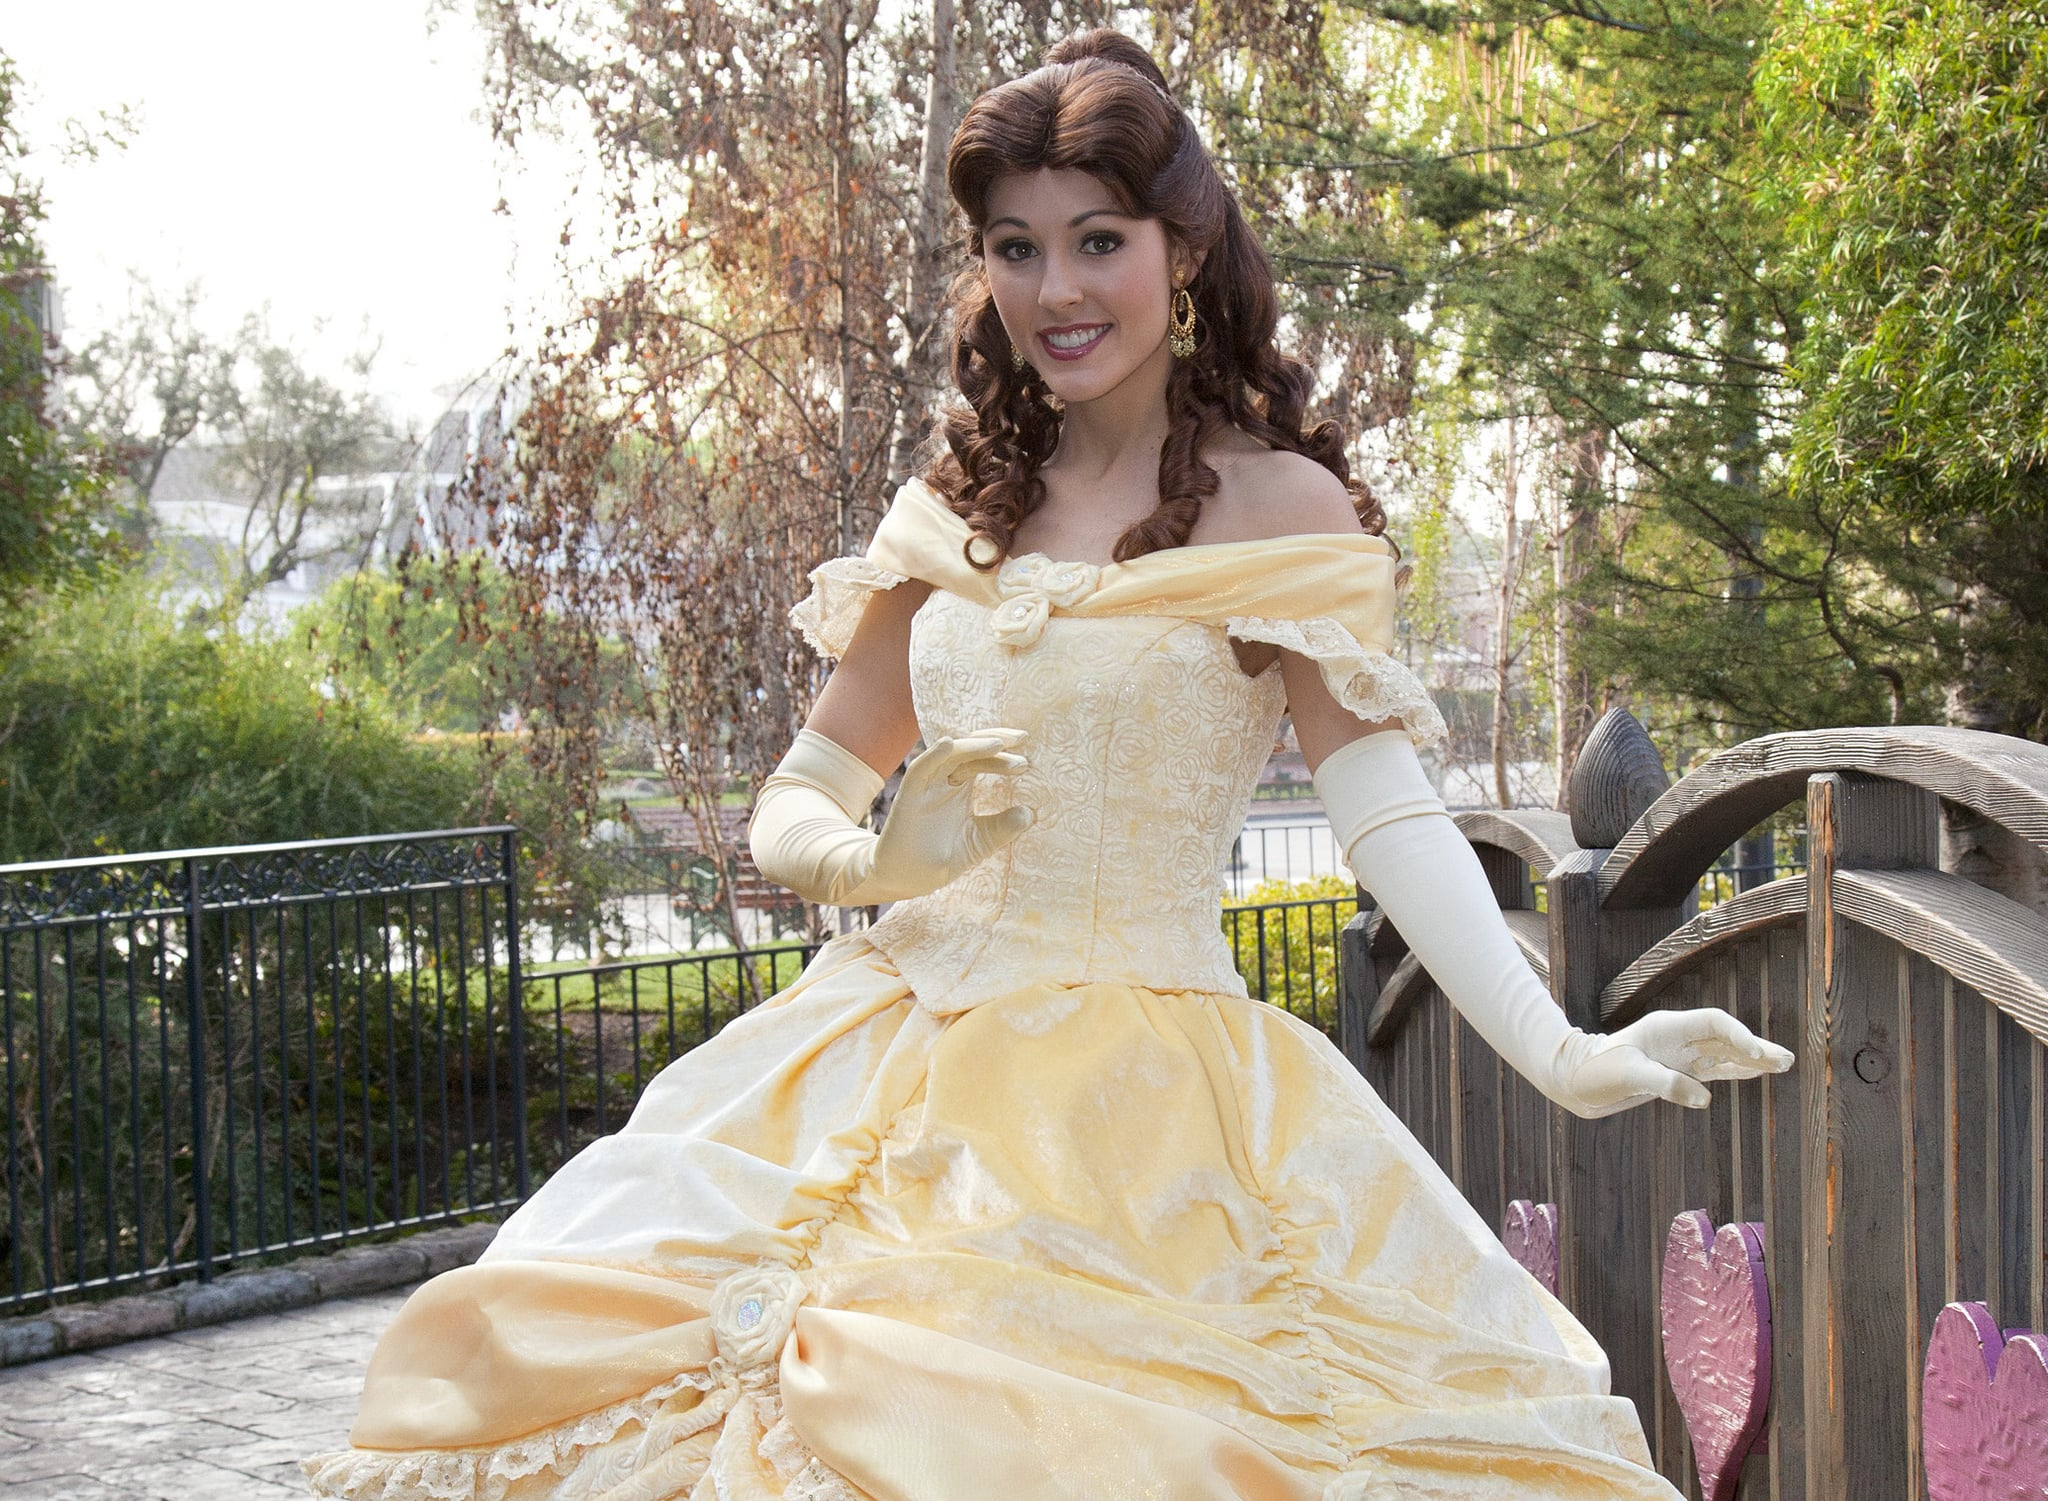 Beauty And The Beast Wedding Dress 13 New Share This Link